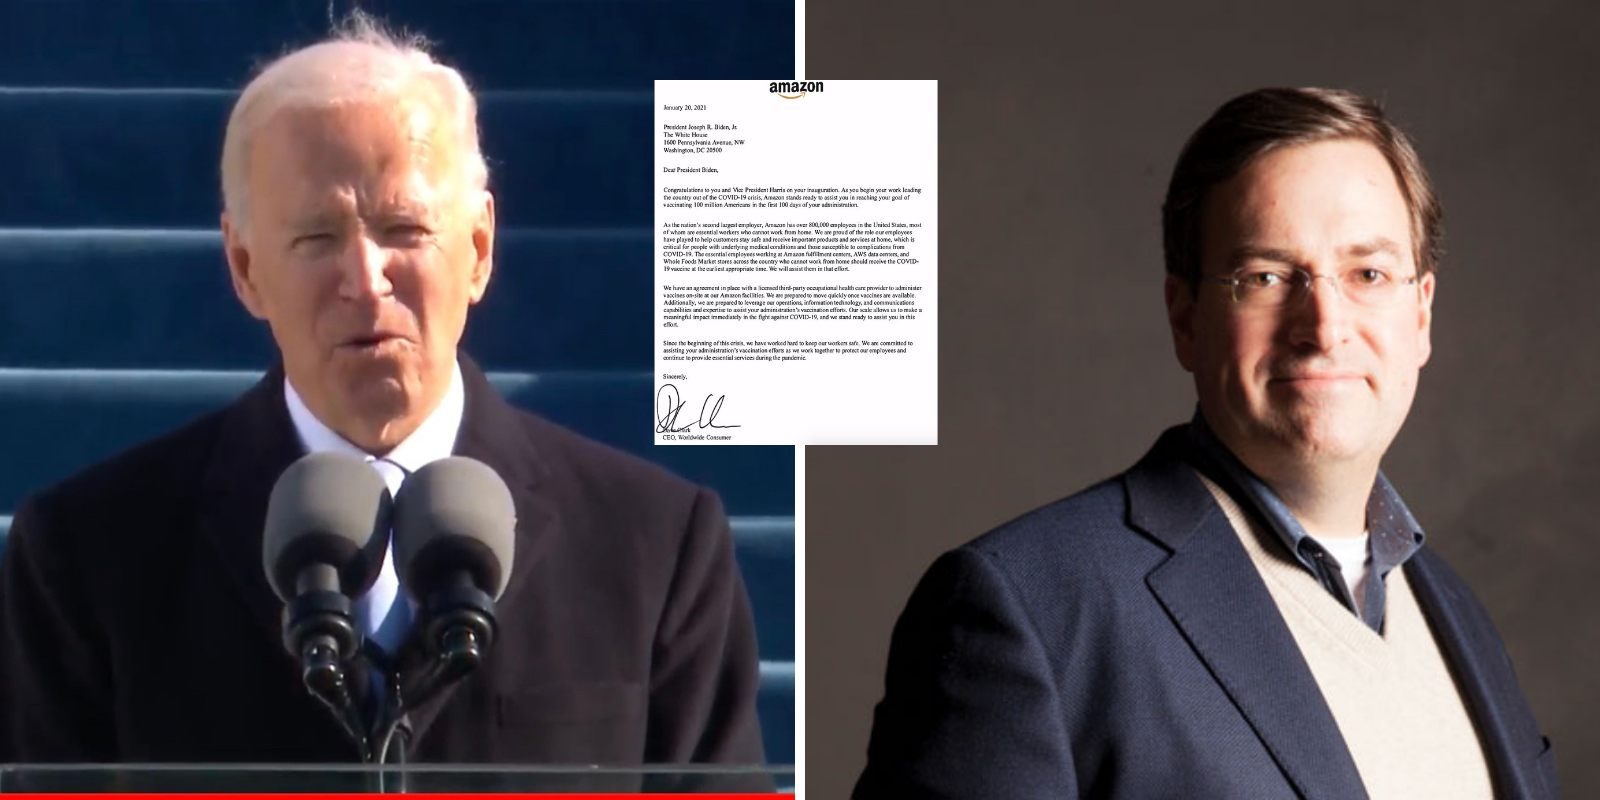 Amazon sends letter to Biden with offer of immediate help for vaccine distribution